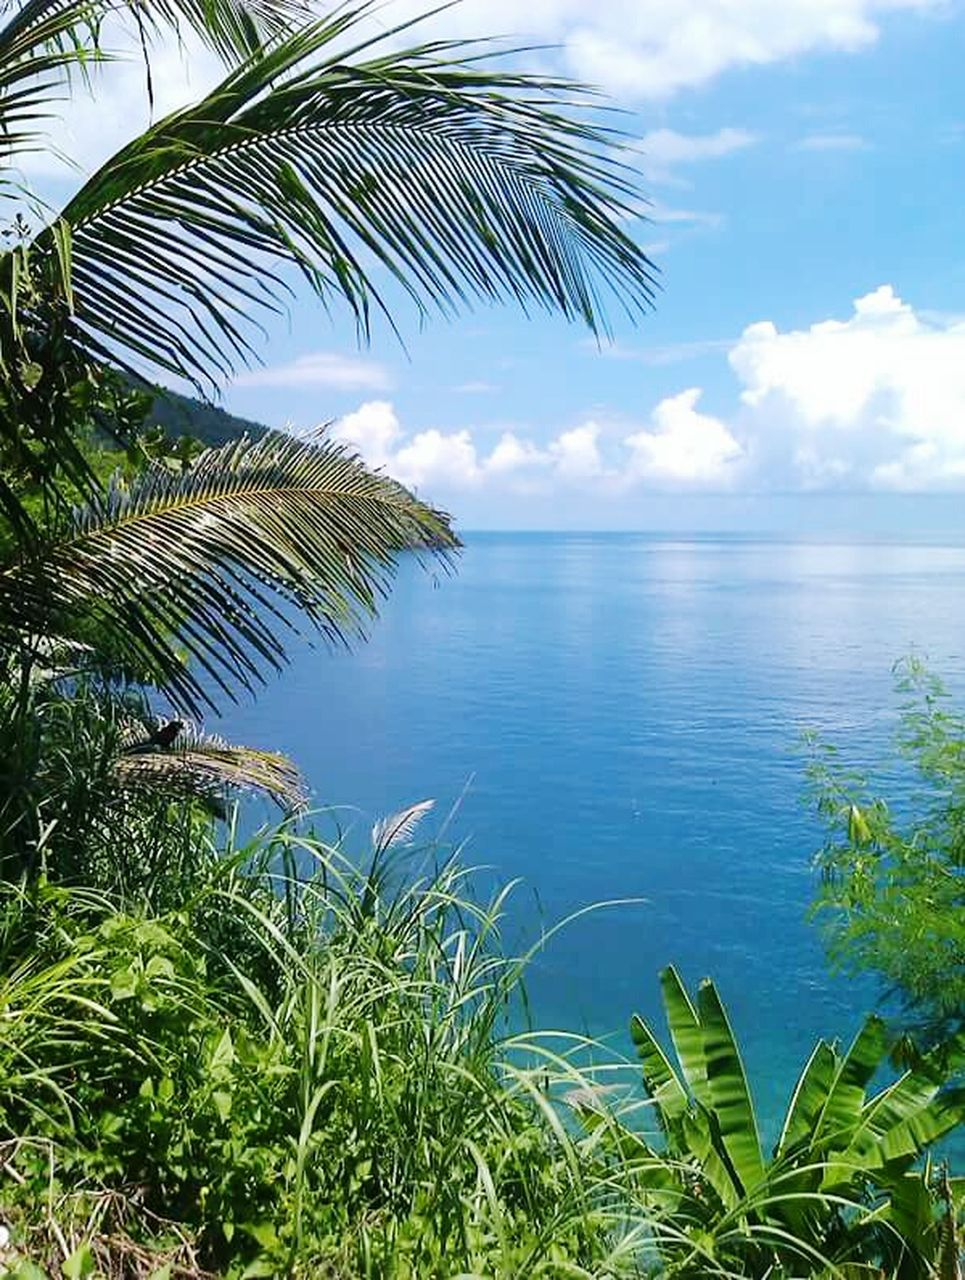 palm tree, tranquility, nature, beauty in nature, scenics, growth, tranquil scene, sea, water, sky, no people, outdoors, leaf, day, tree, horizon over water